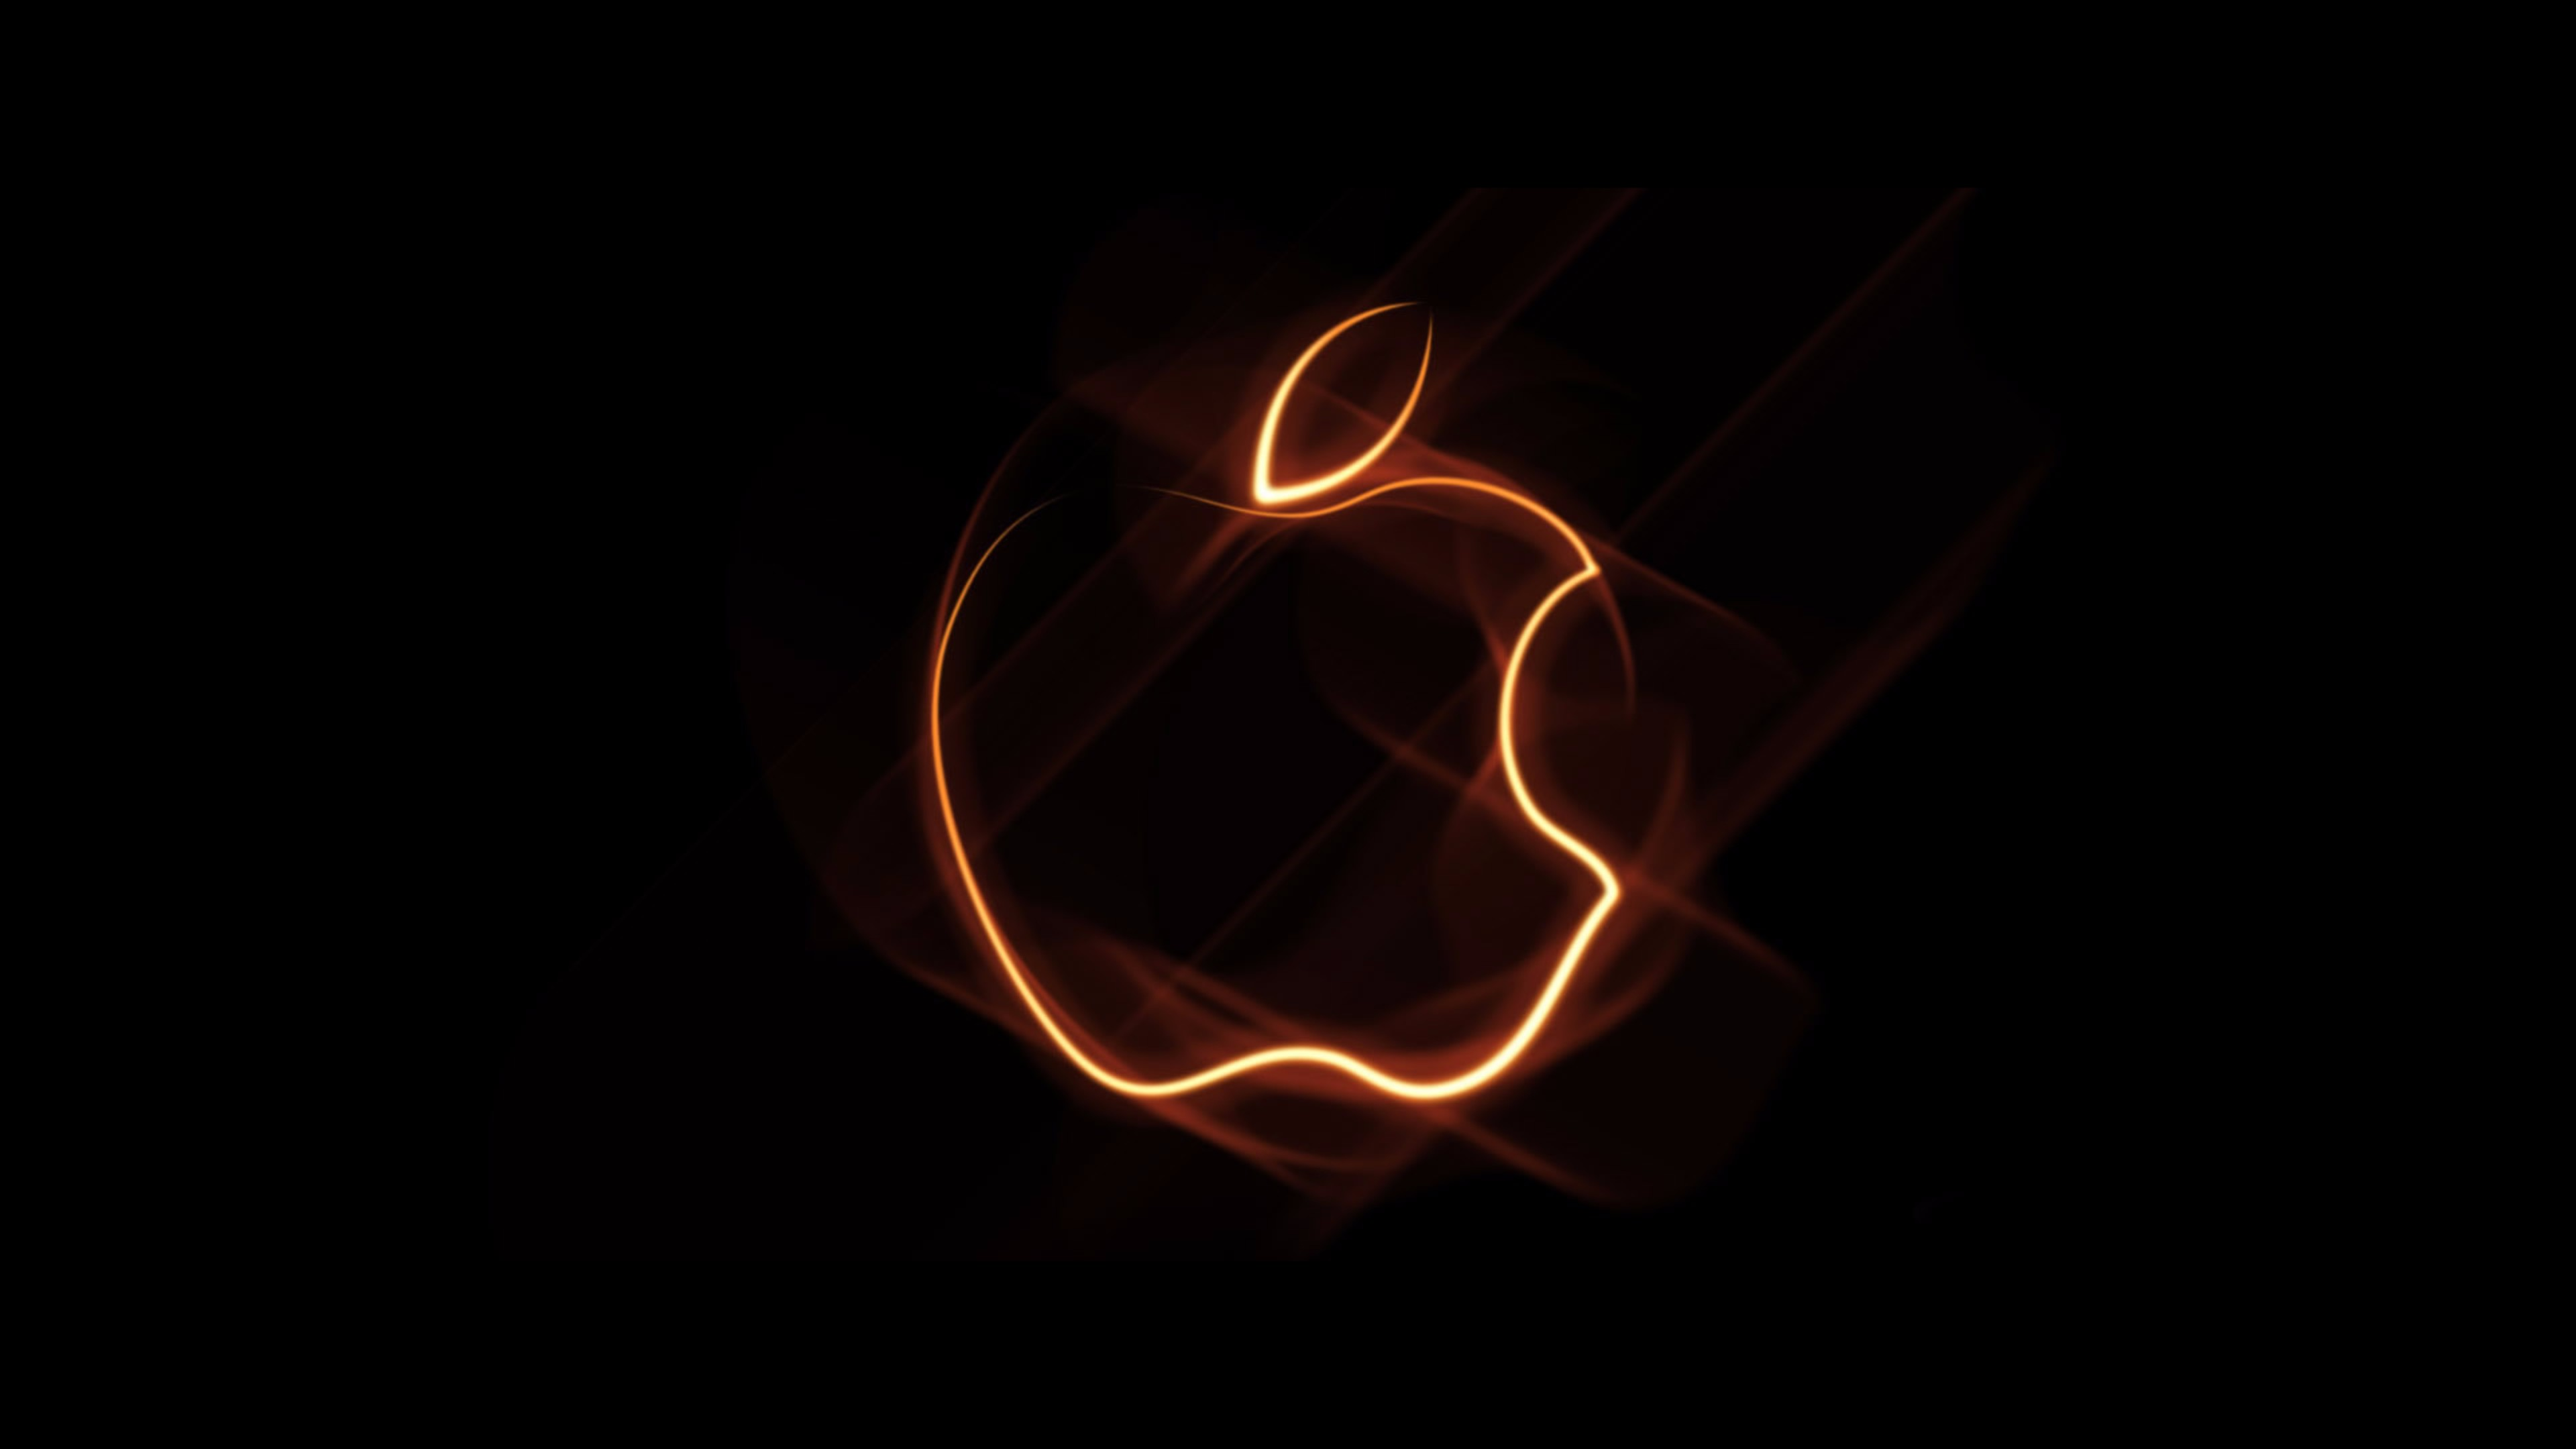 wallpapers apple wallpaper 4k 3d apple logo 1080p